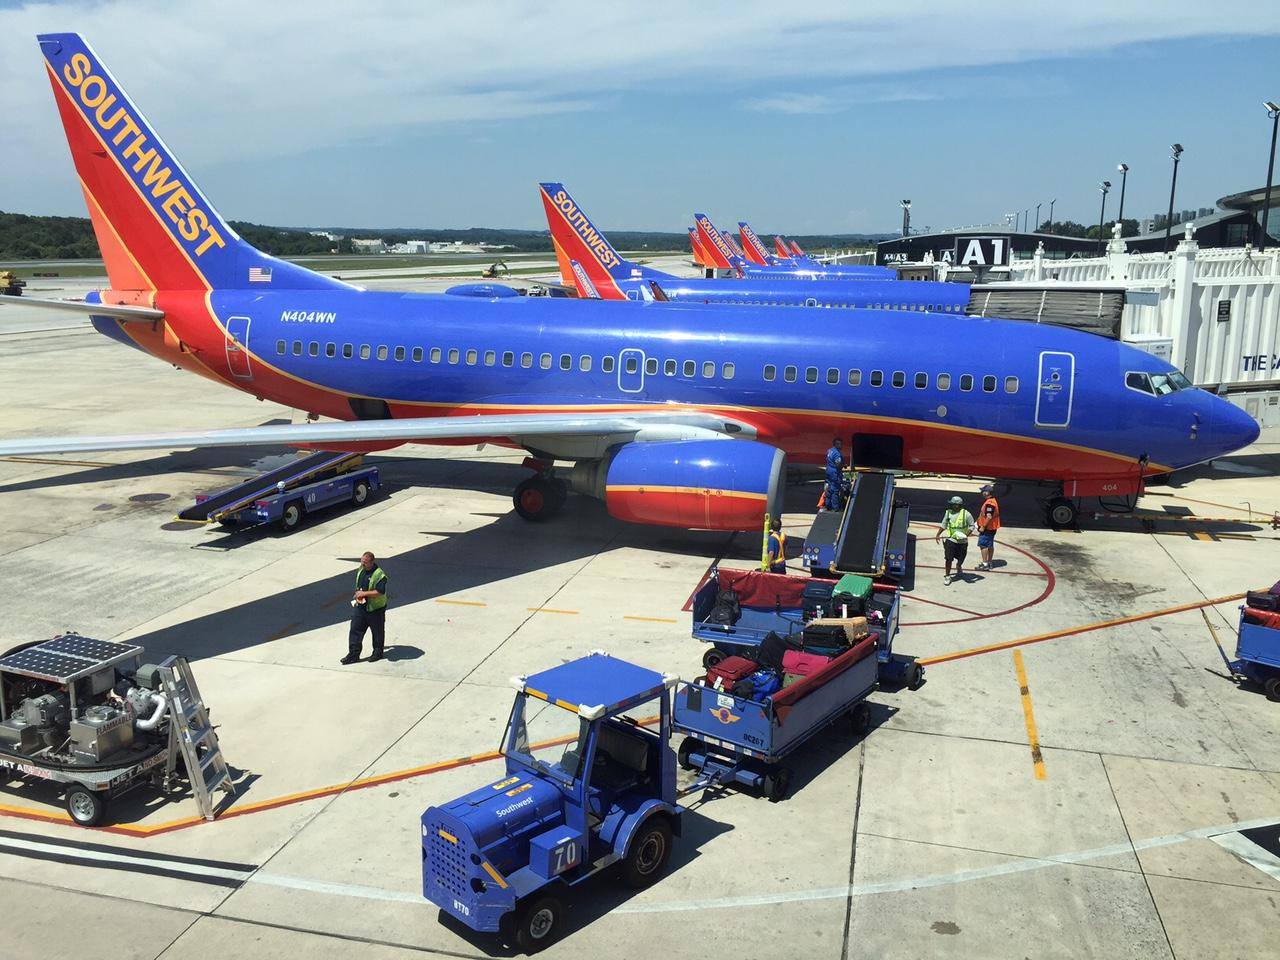 Pickup Truck Hits Southwest Arilines Plane, Gets Stuck Under Aircraft